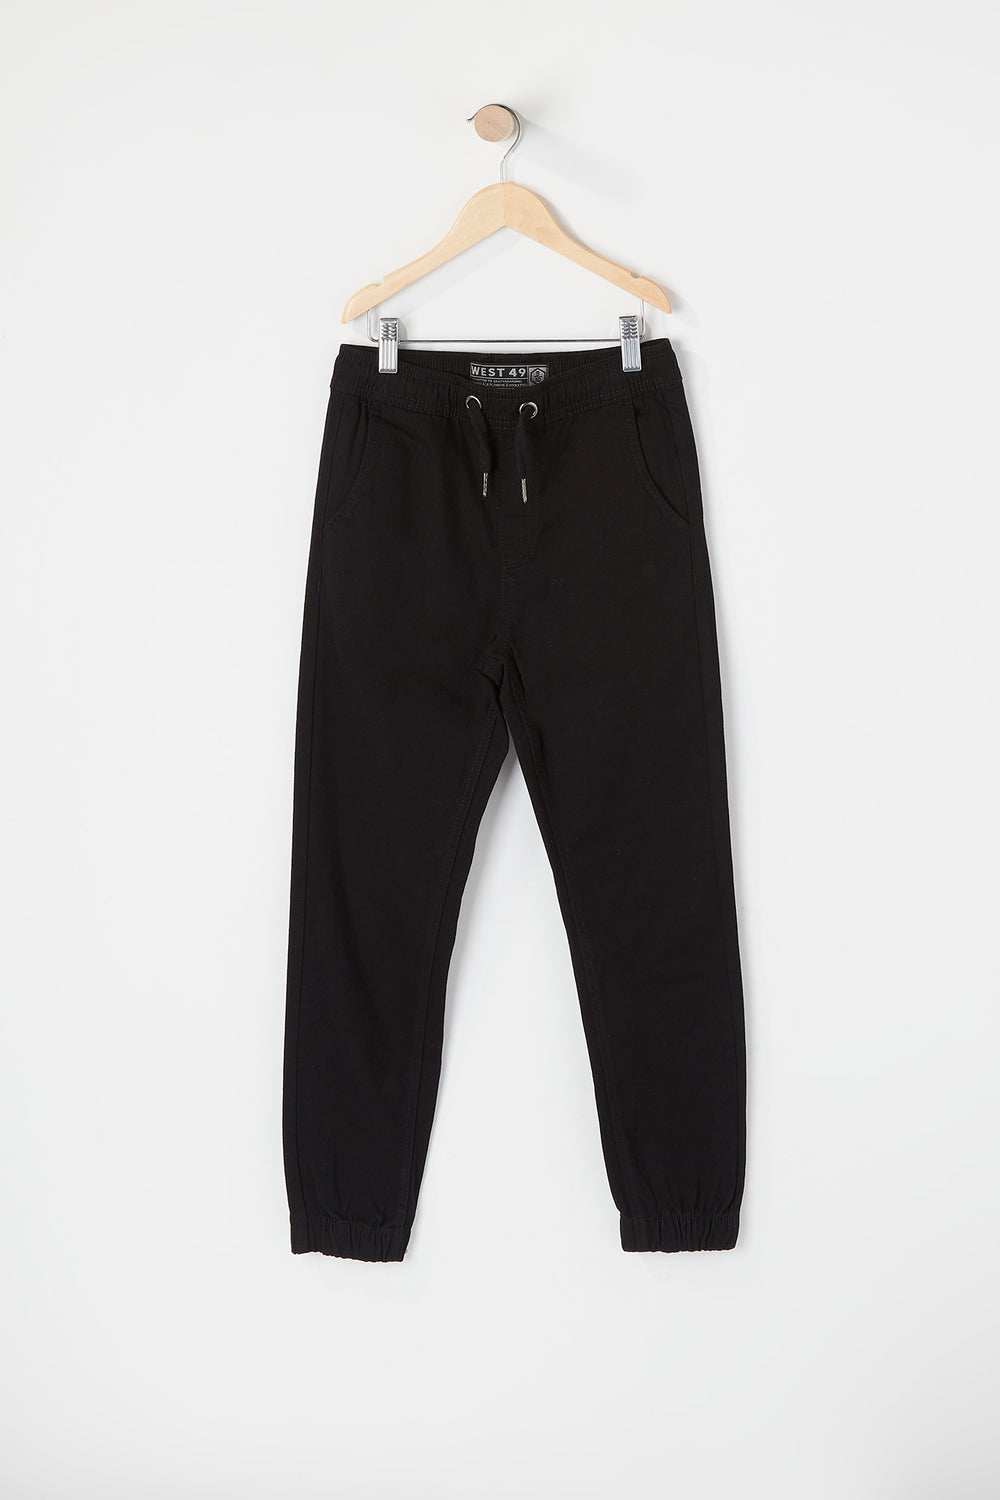 Jogger Uni Zoo York Junior Noir